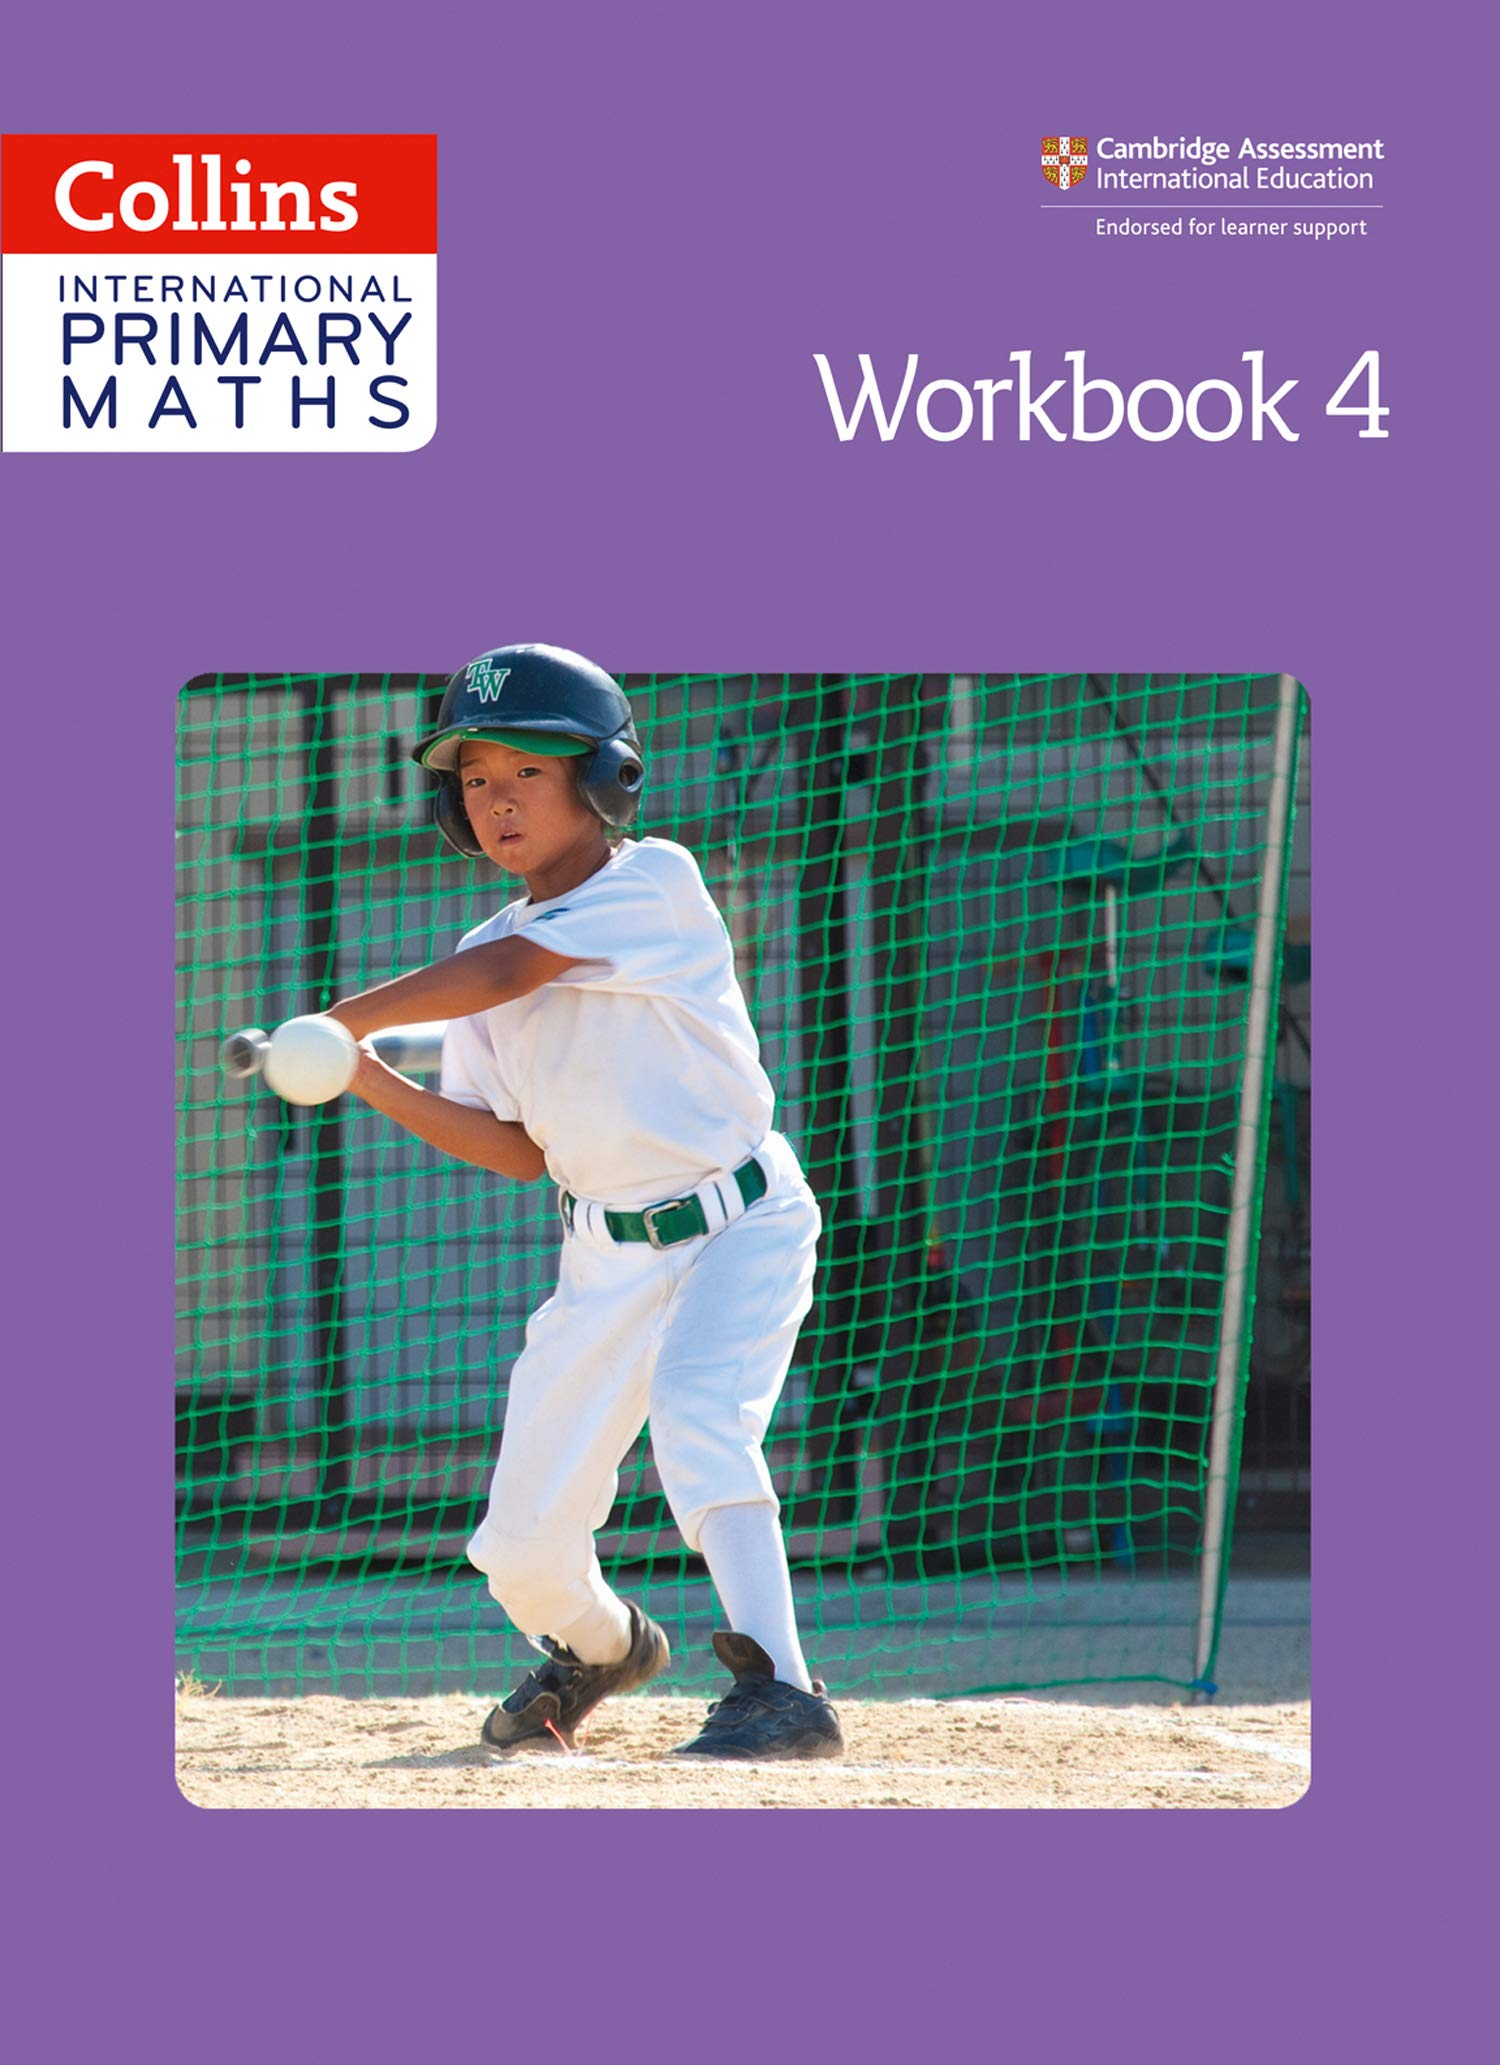 Collins International Primary Maths - Workbook 4